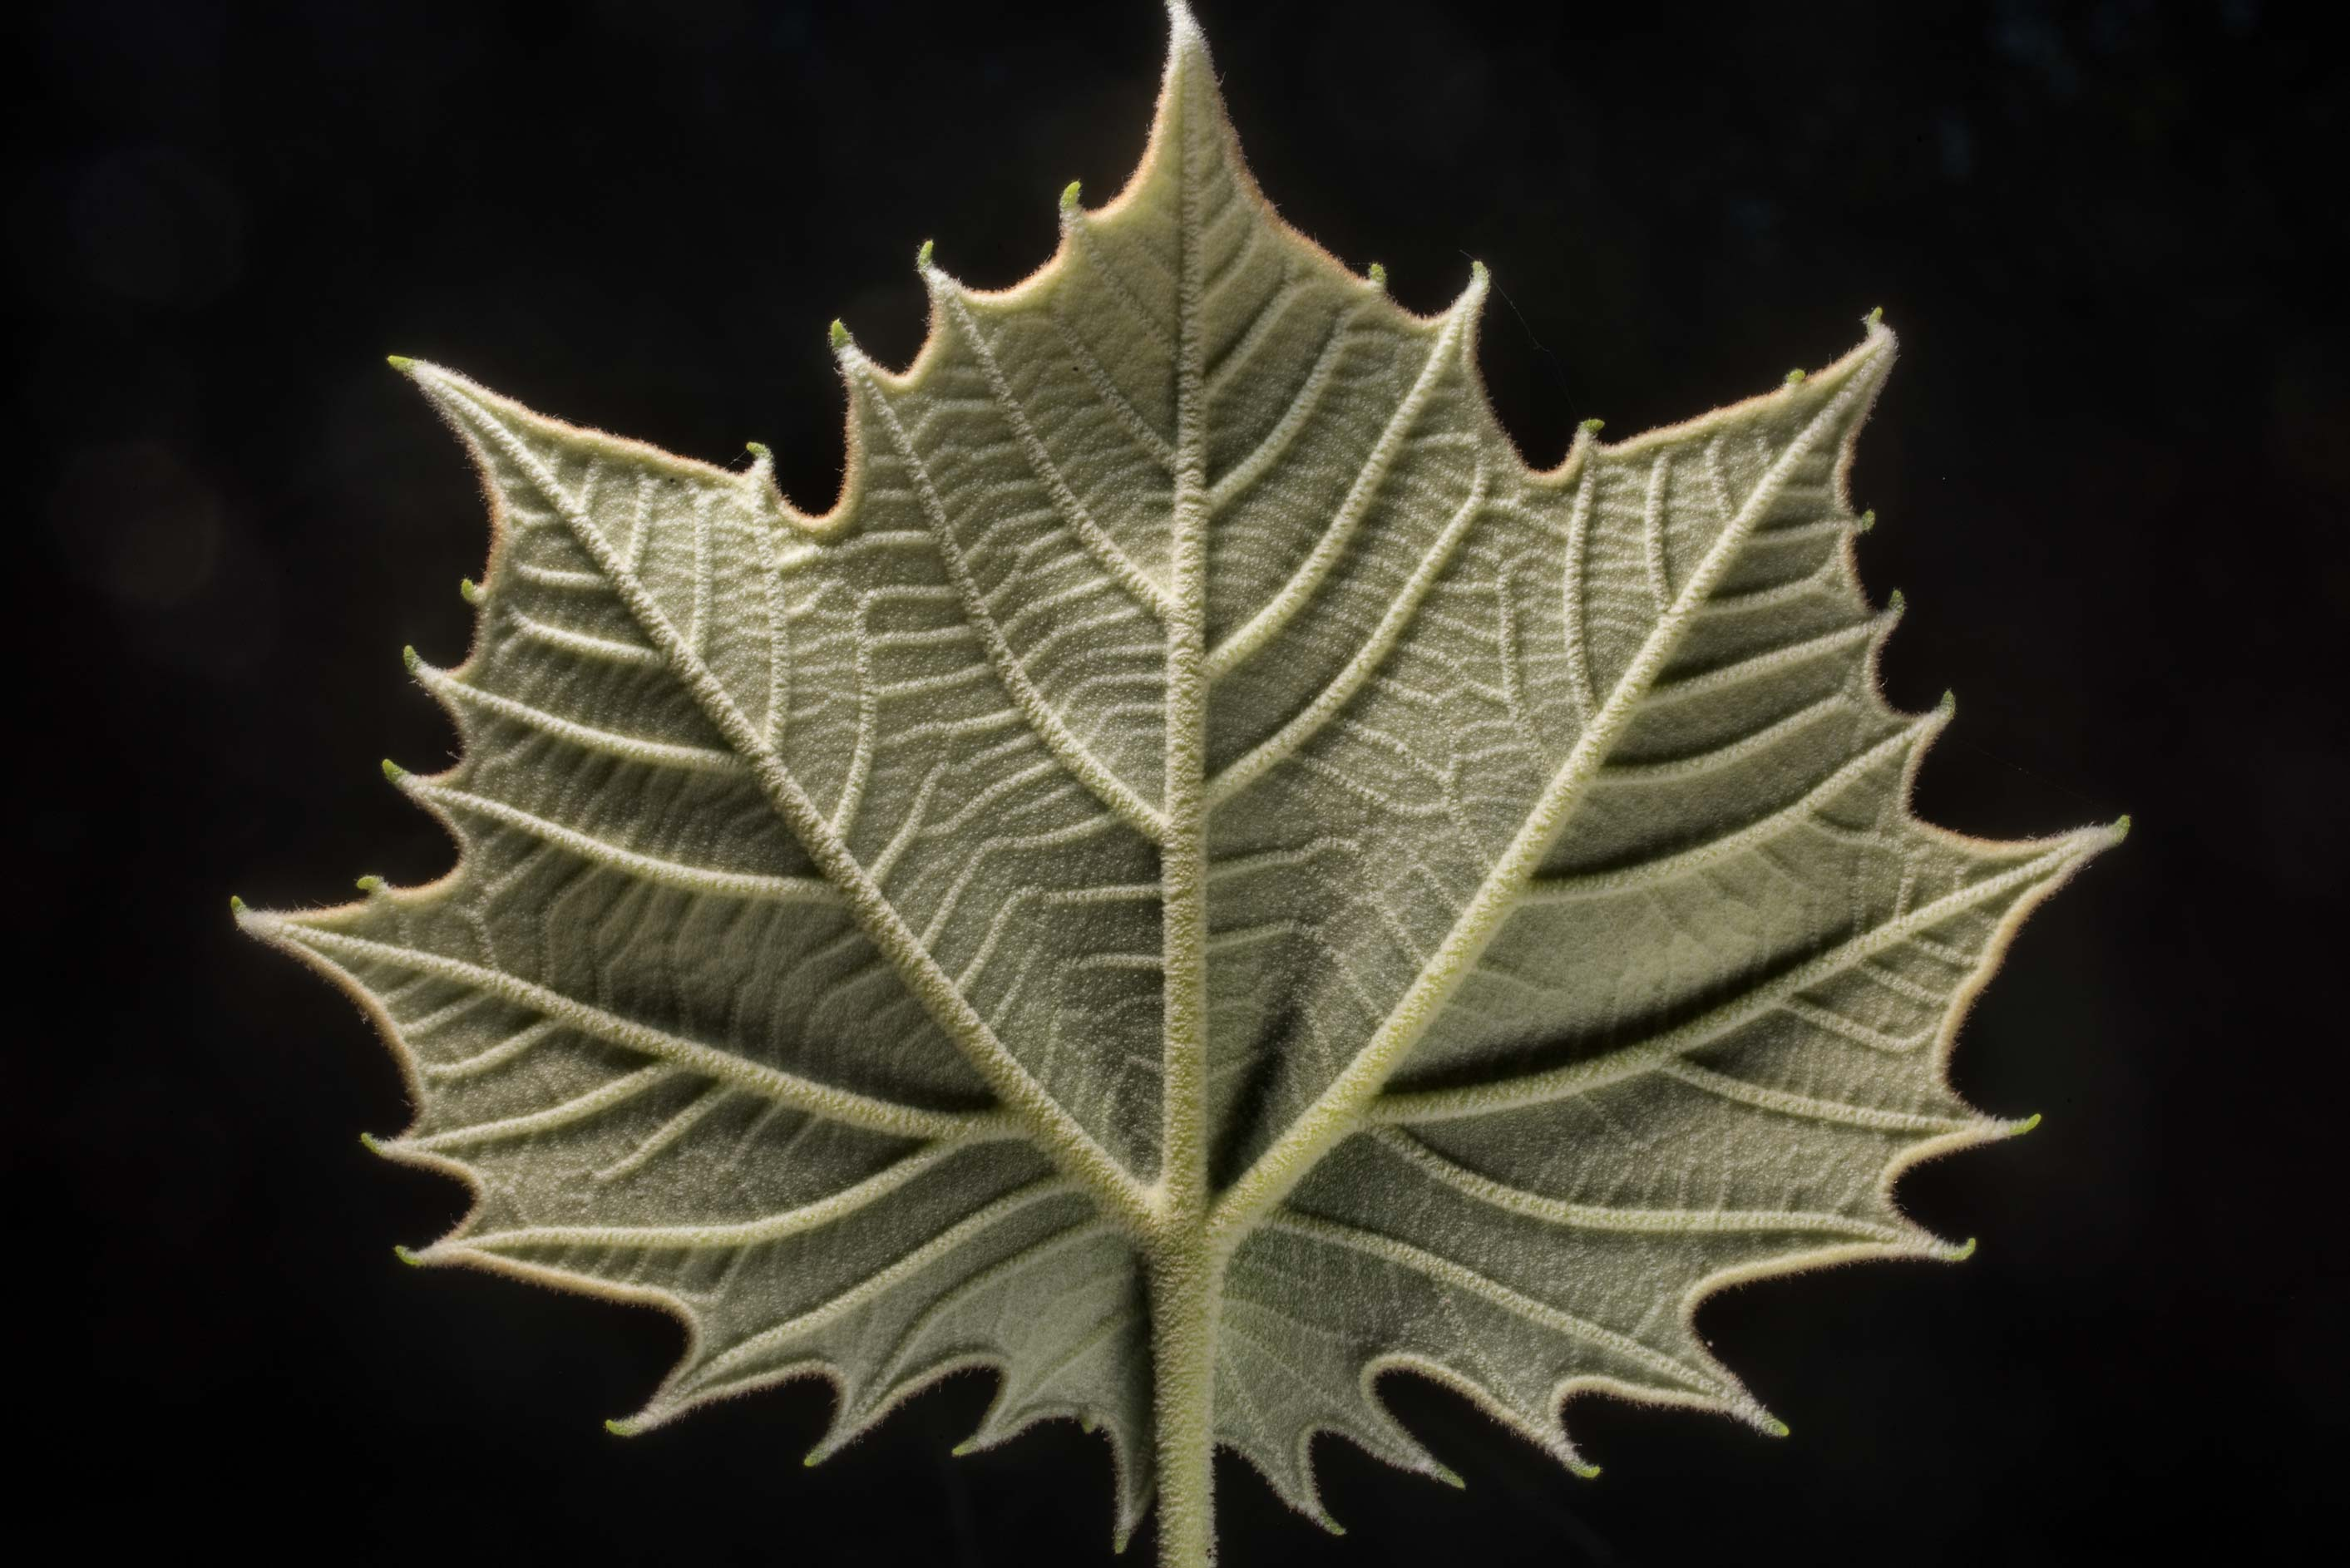 Underside of a young sycamore leaf in Lick Creek Park. College Station, Texas